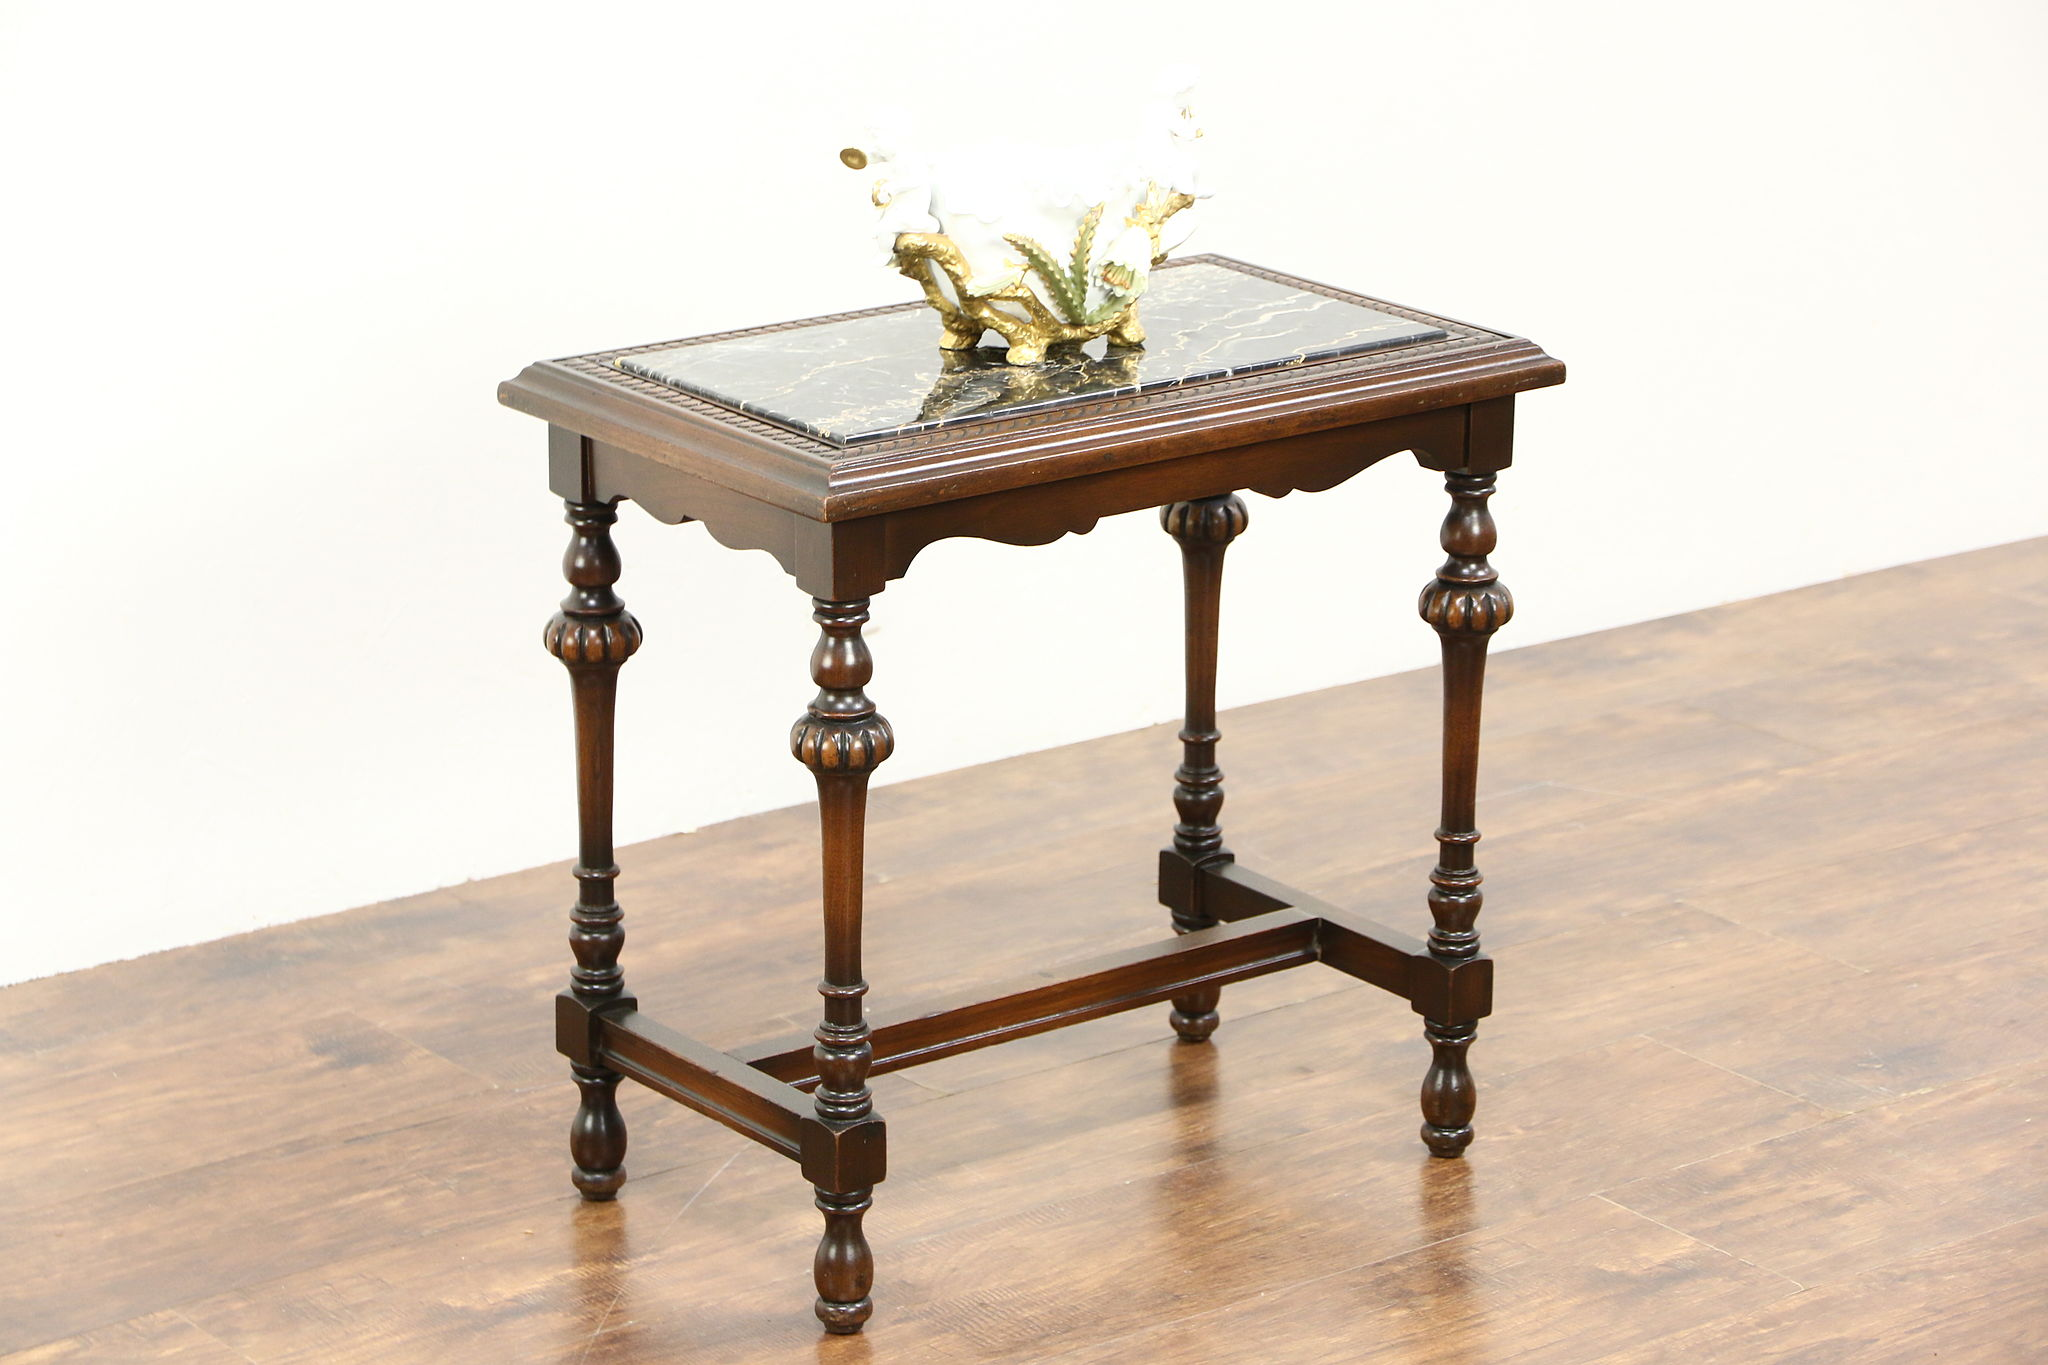 Attractive SOLD - Chairside Tea or Coffee Table, 1920's Antique, Black Marble  AO88